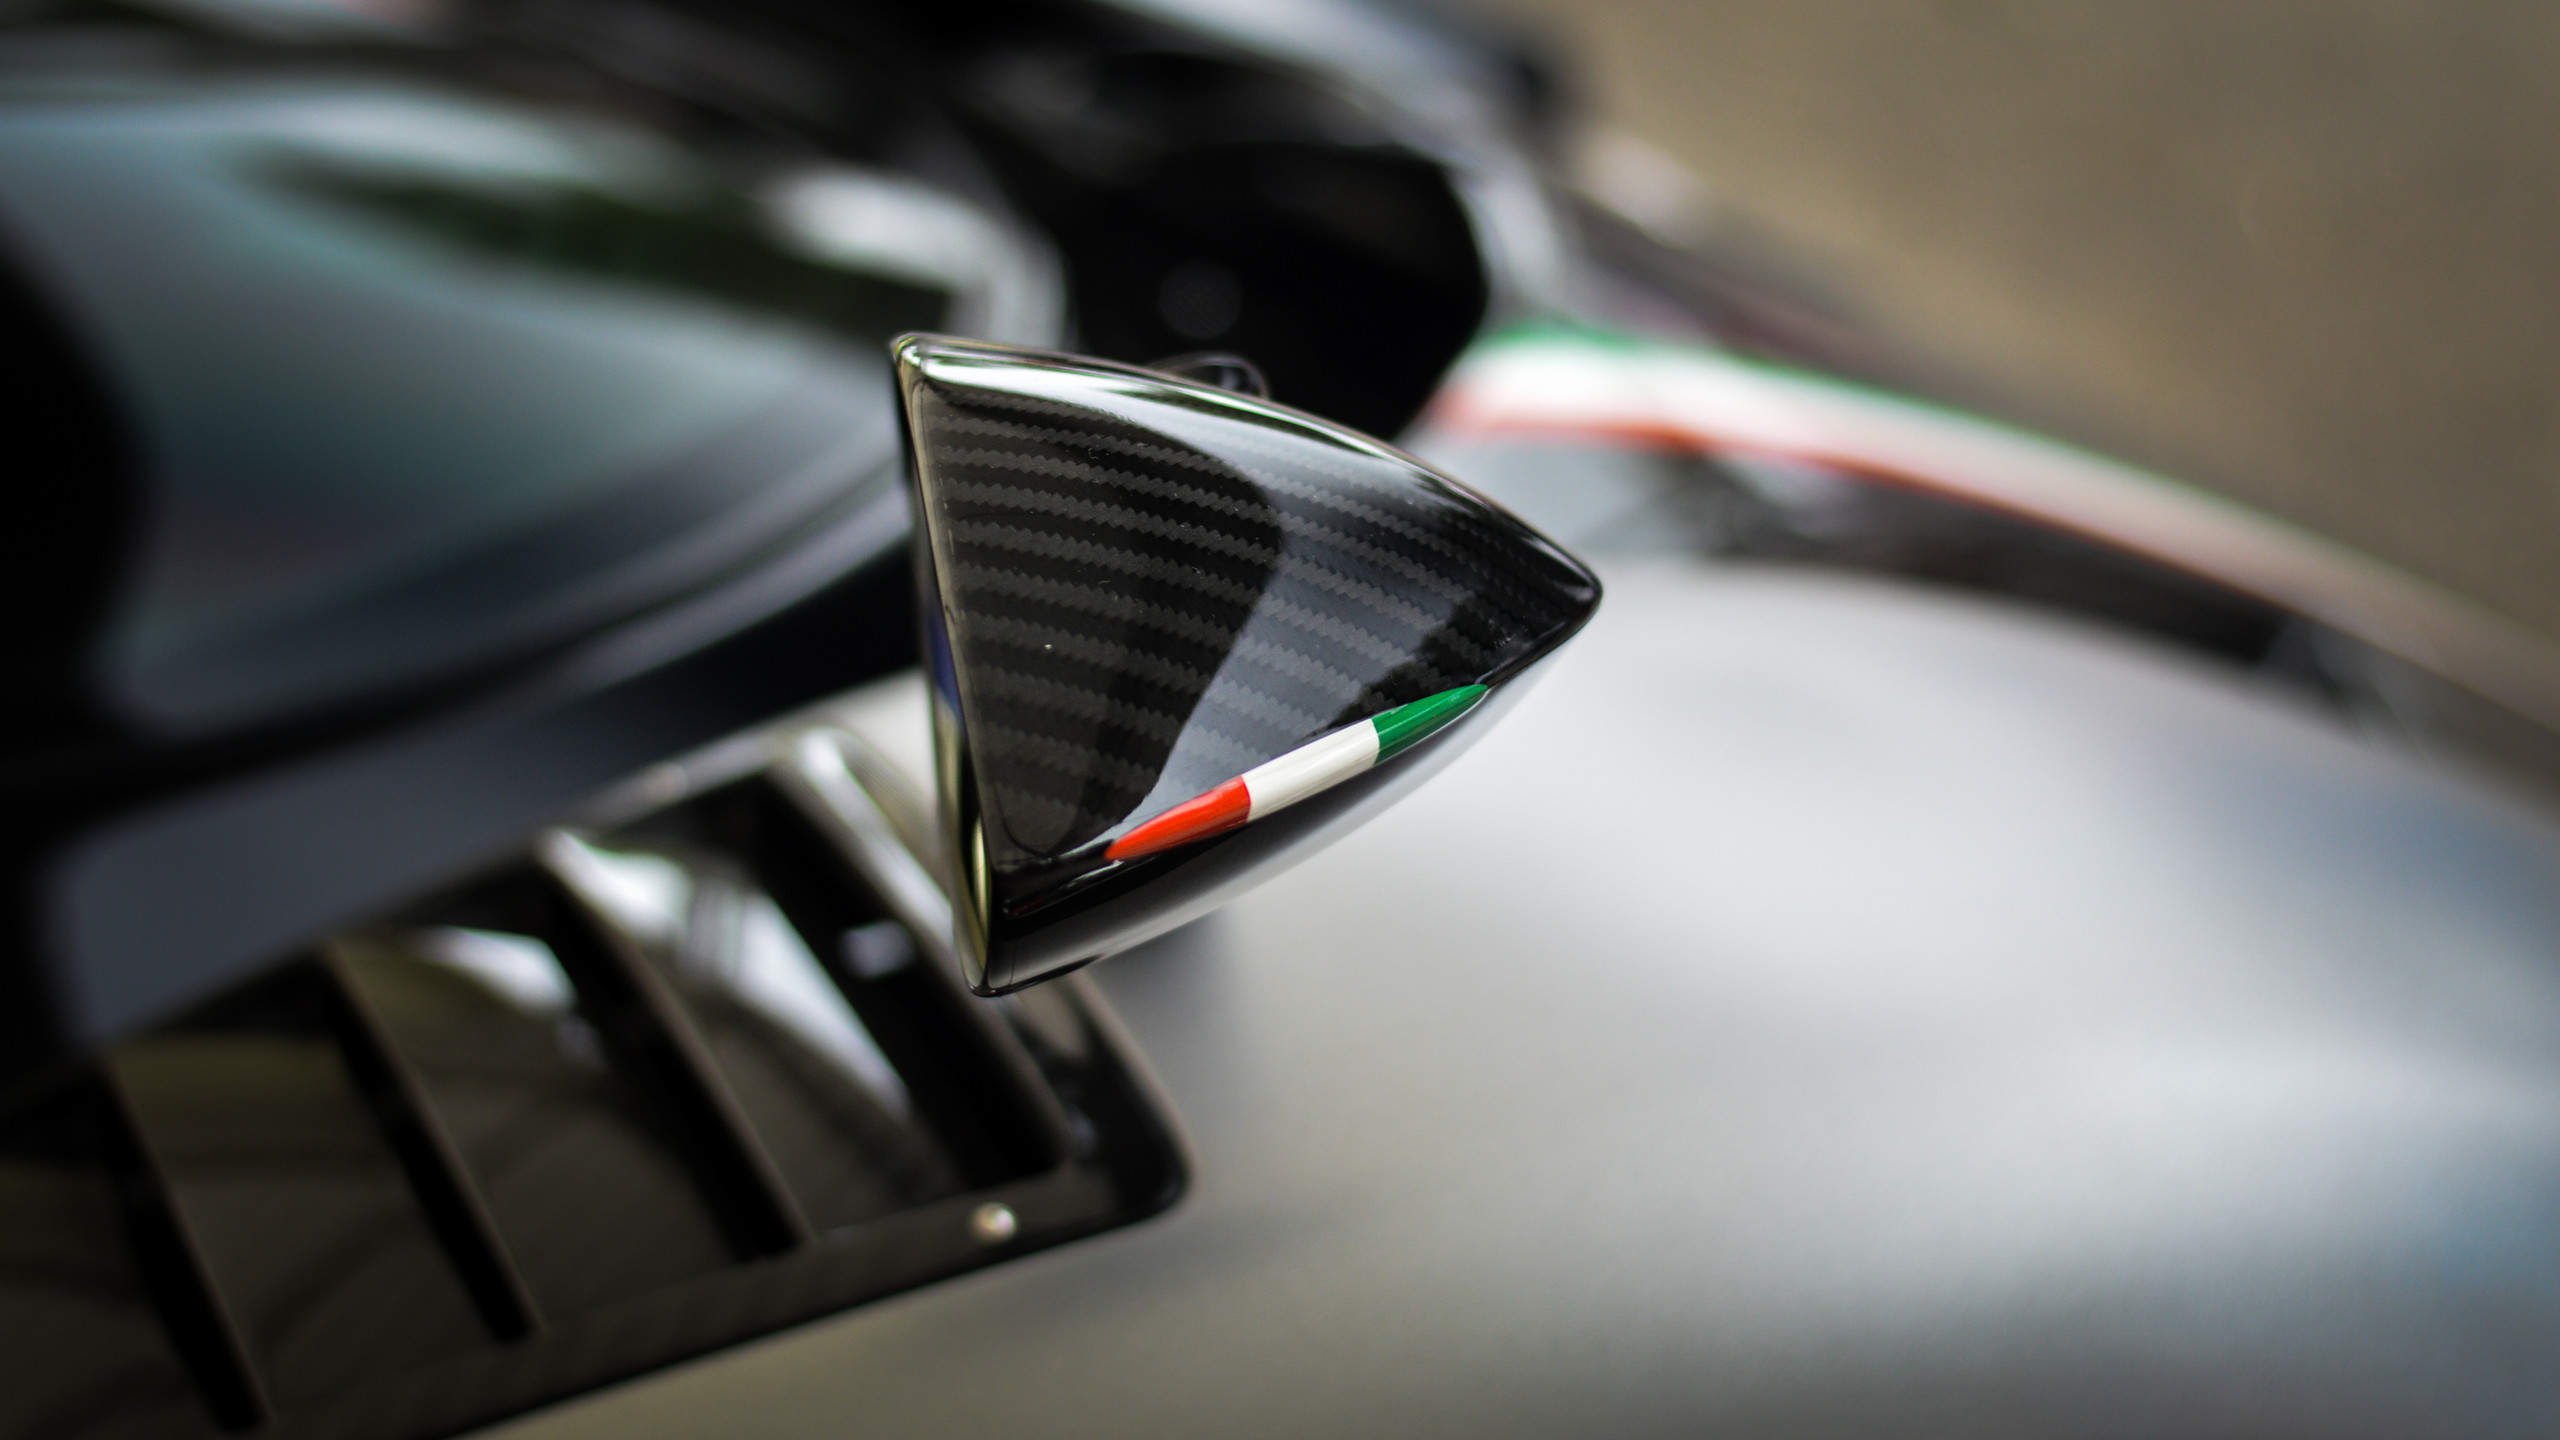 Pagani clearly took inspiration from natural forms, as shown by this raindrop shaped wing mirror